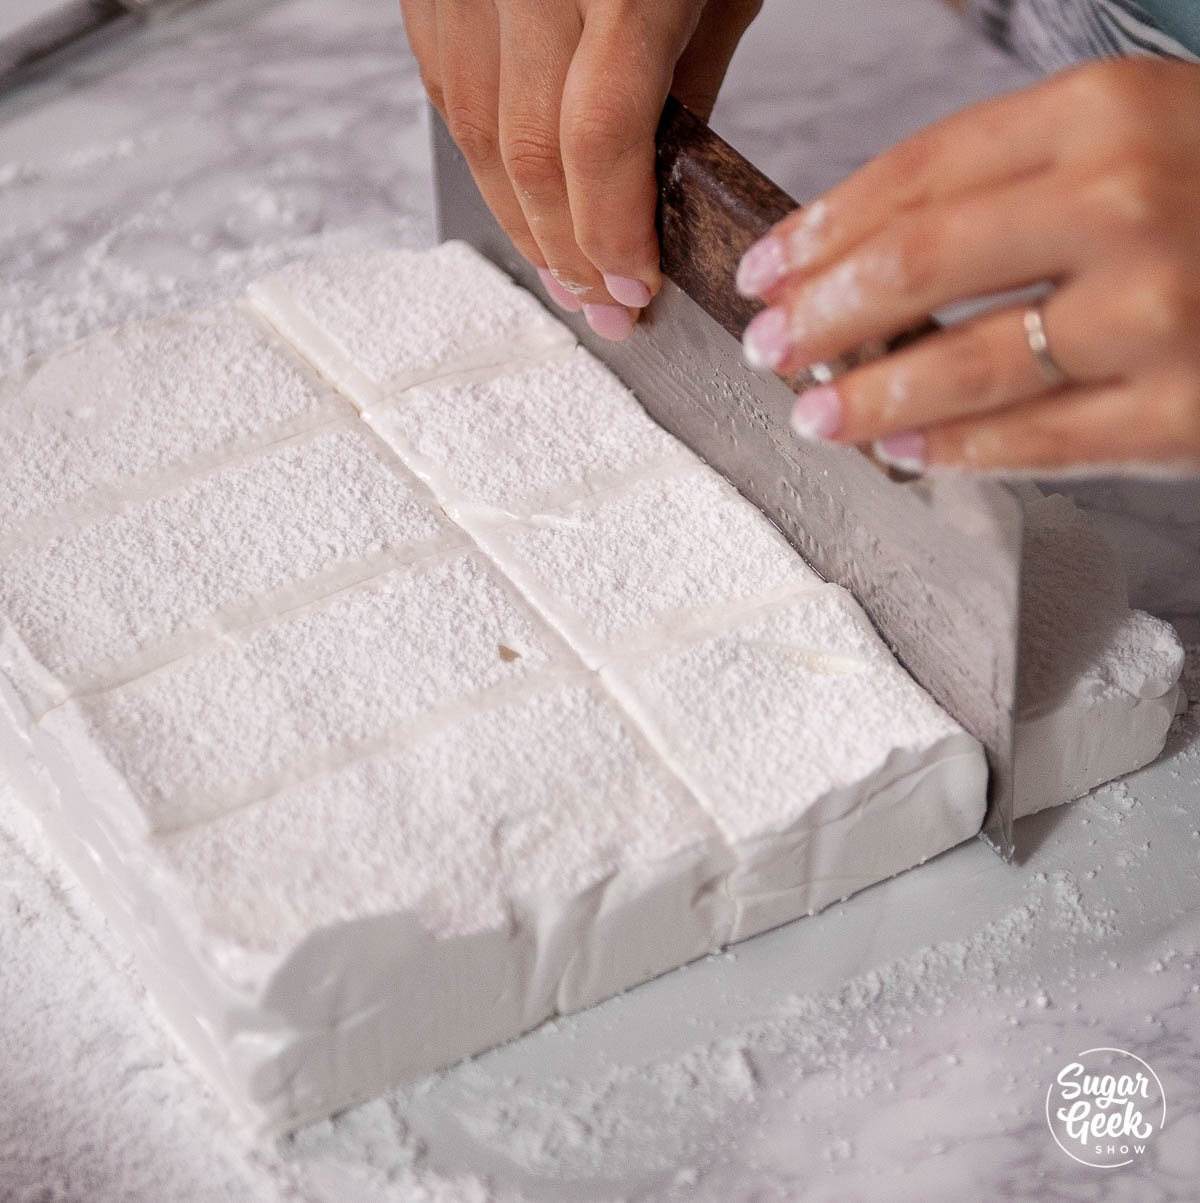 cut homemade marshmallows with an oiled bench scraper